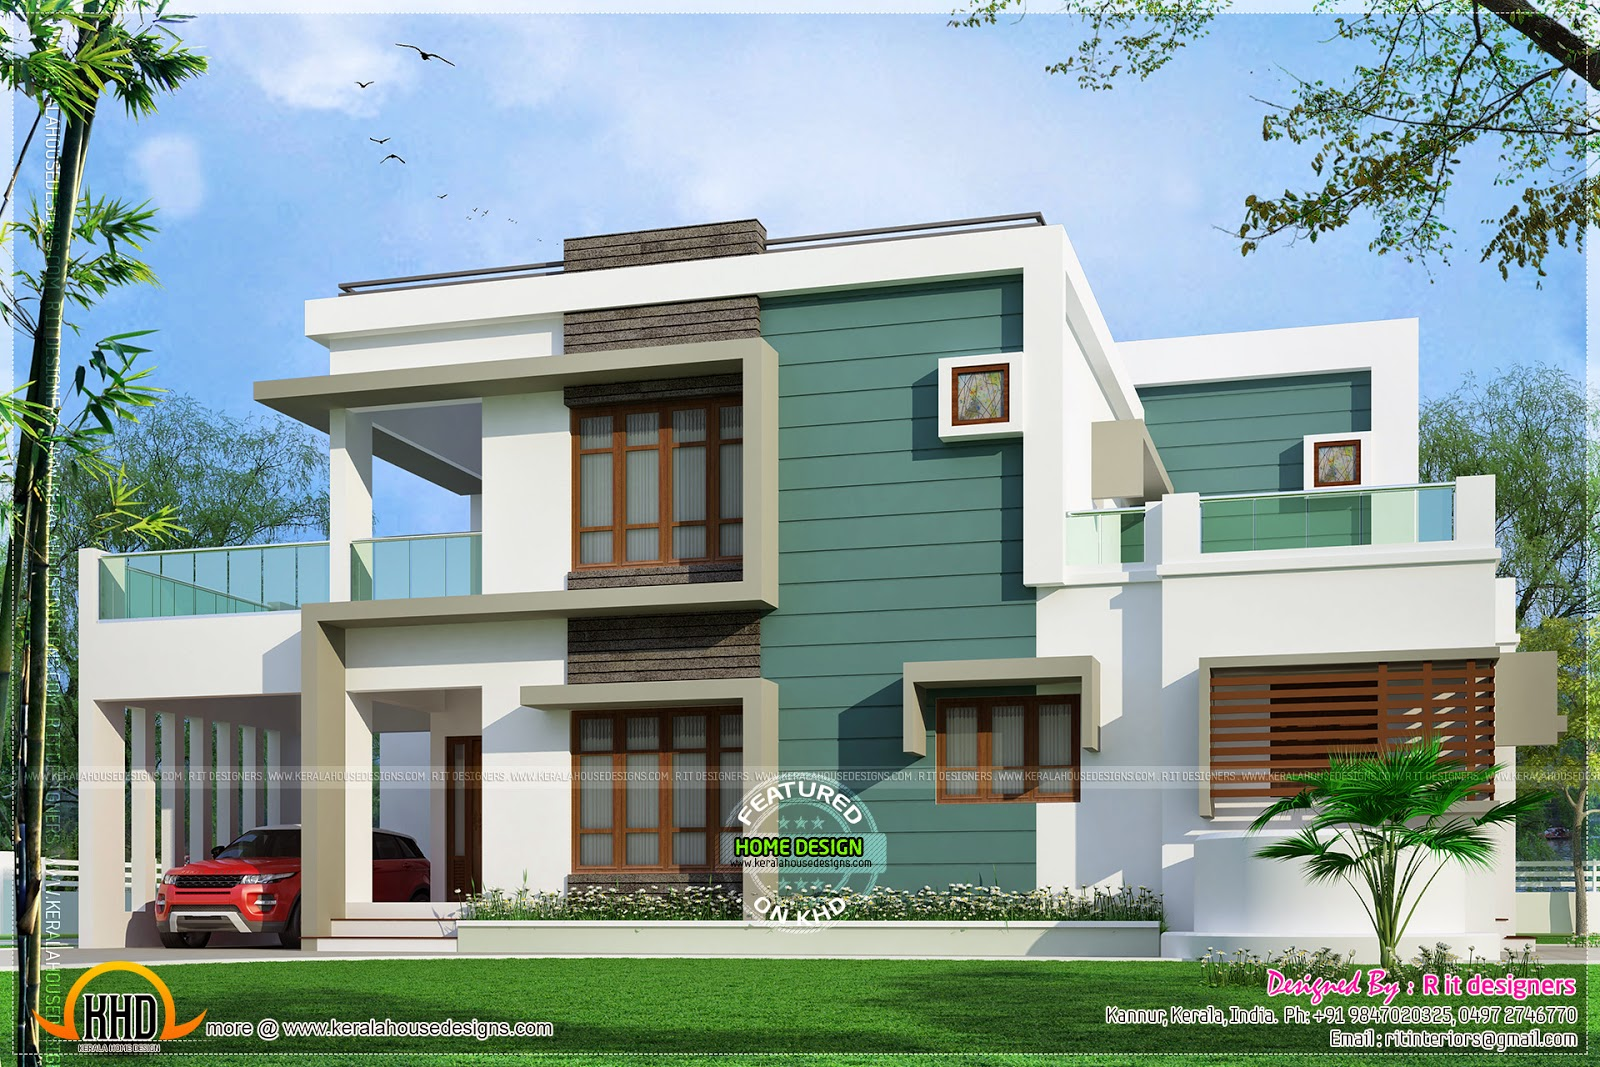 Kannur home design kerala home design and floor plans for Square house design